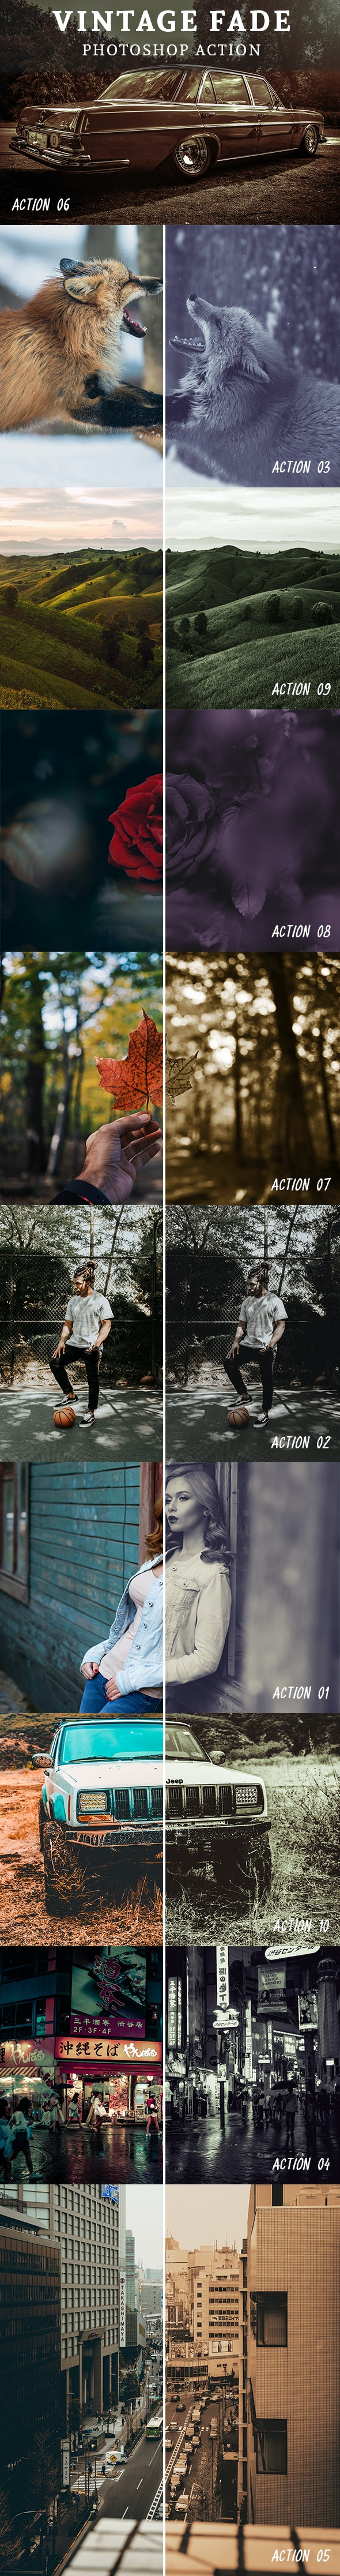 10 Vintage Fade Photoshop Action - Photo Effects Actions